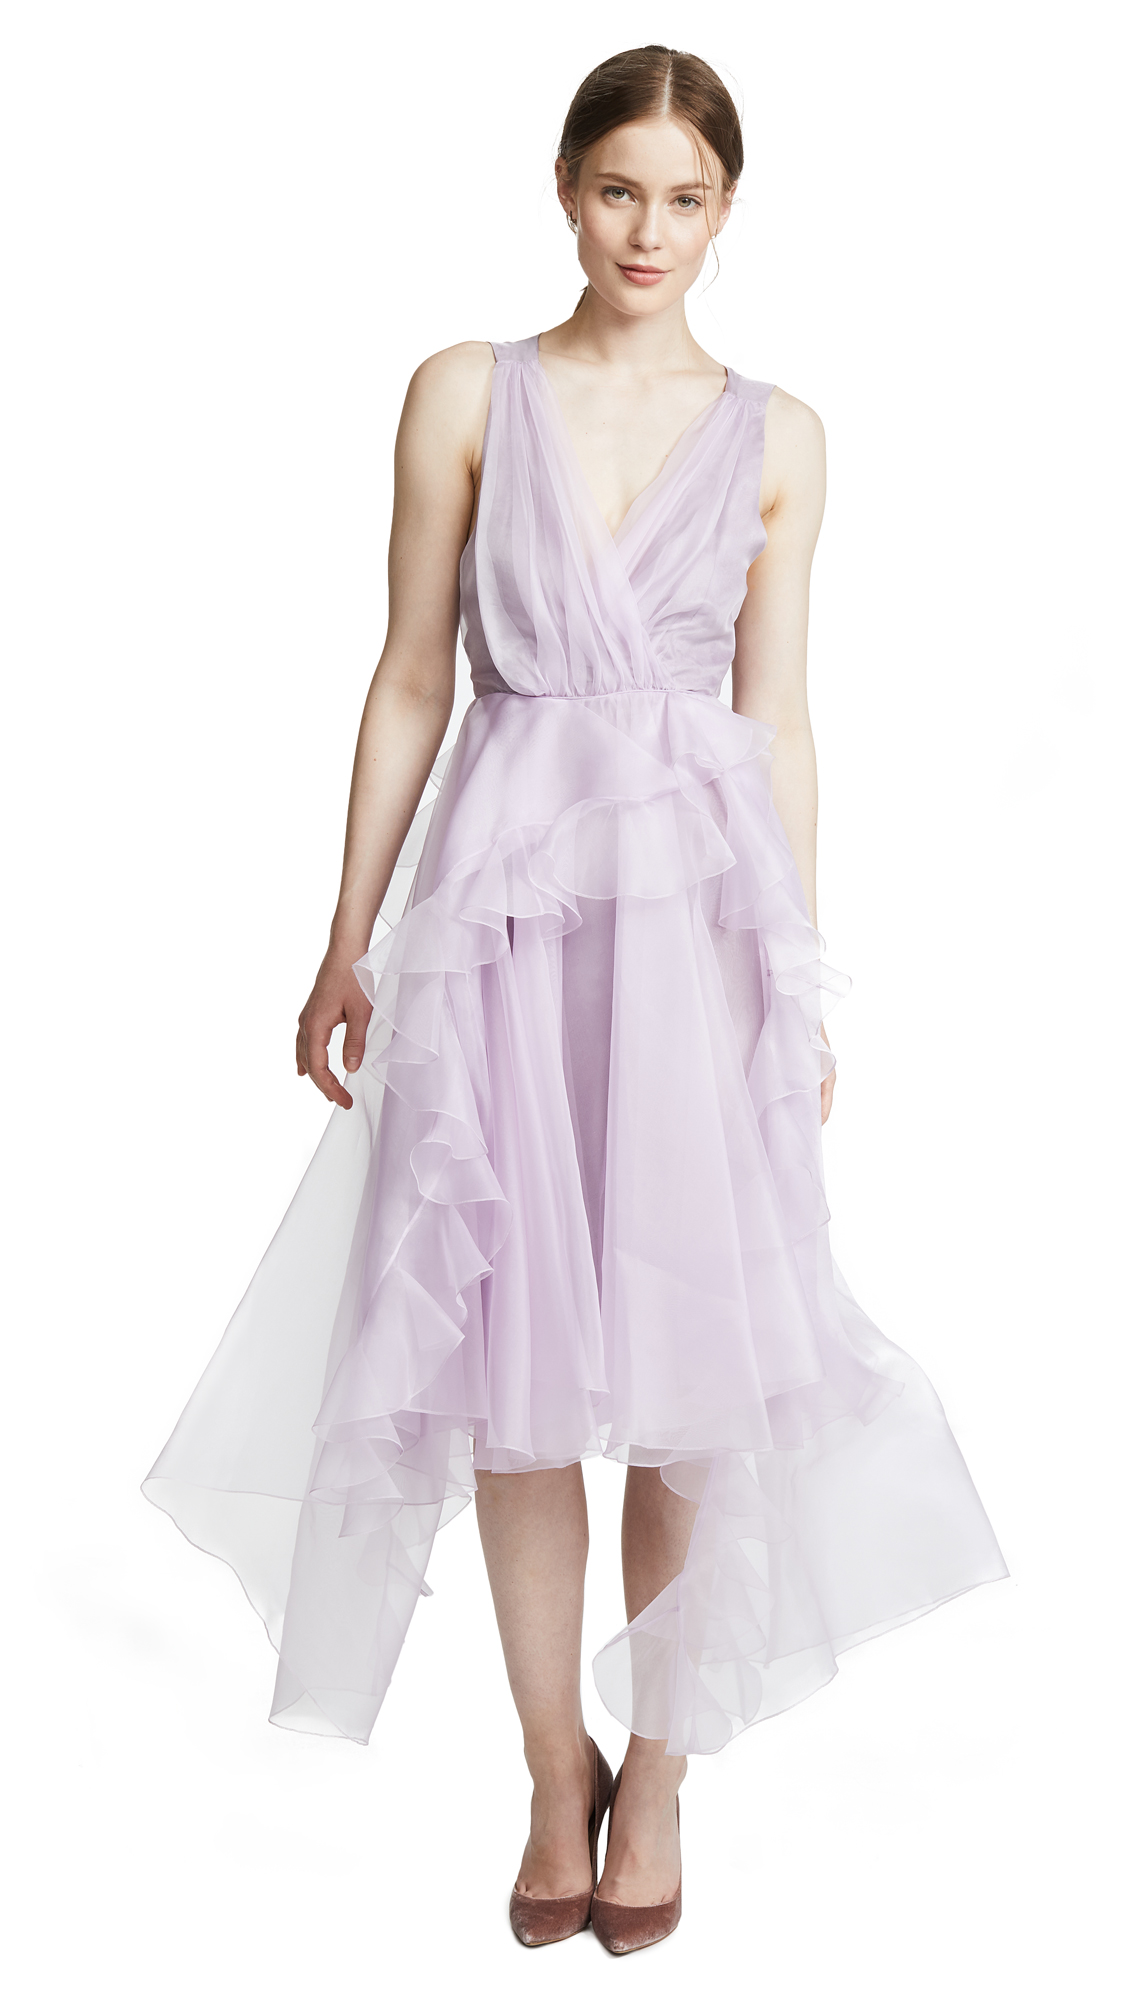 Preen By Thornton Bregazzi Blanche Dress